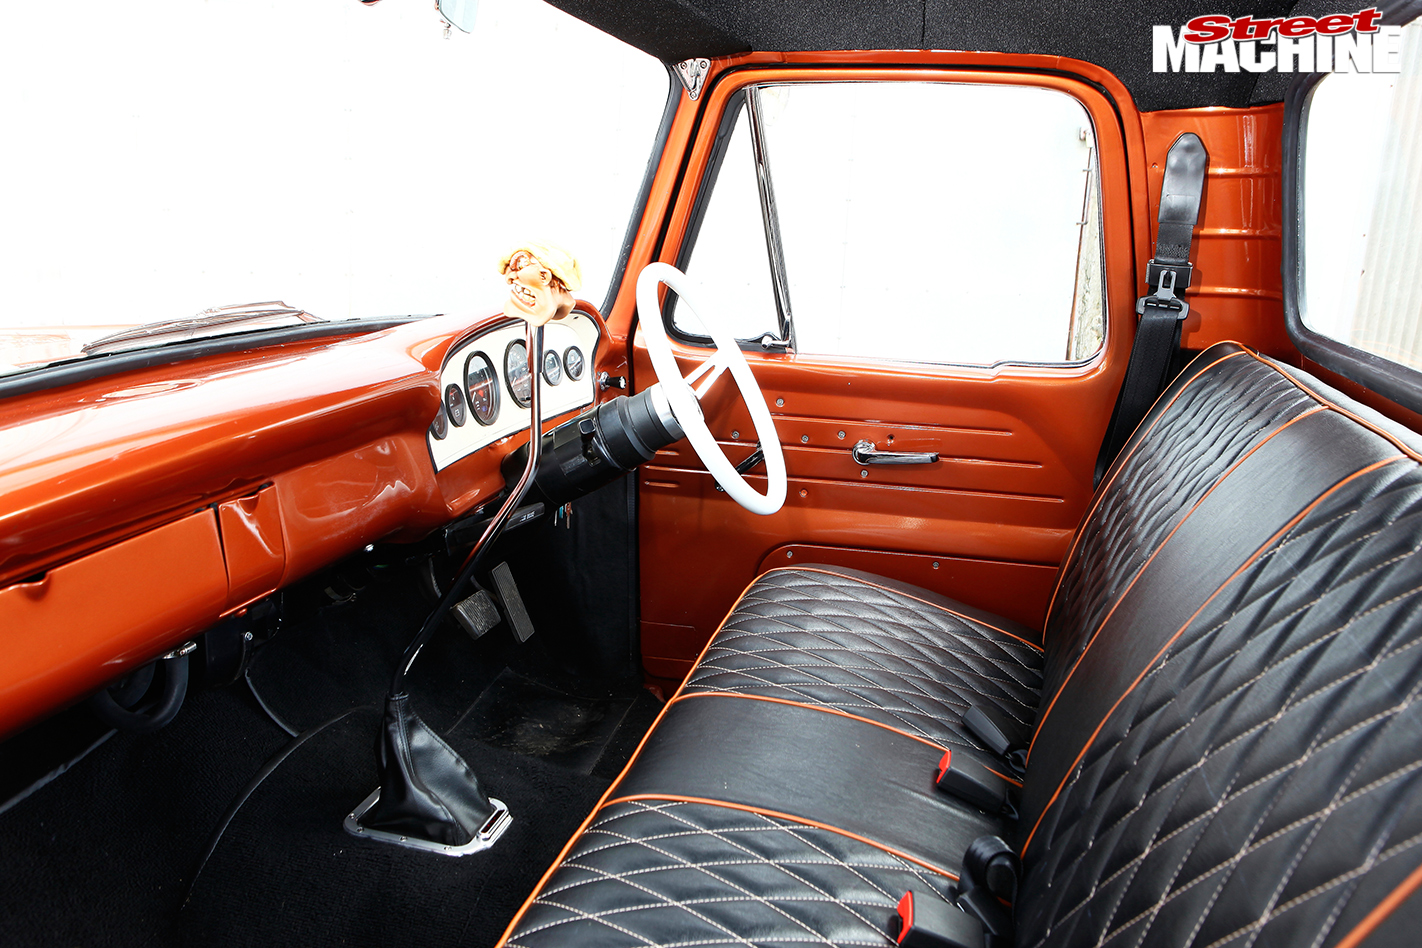 Home Built 302 Clevo Powered 1964 Ford F100 1955 Interior F 100 Front